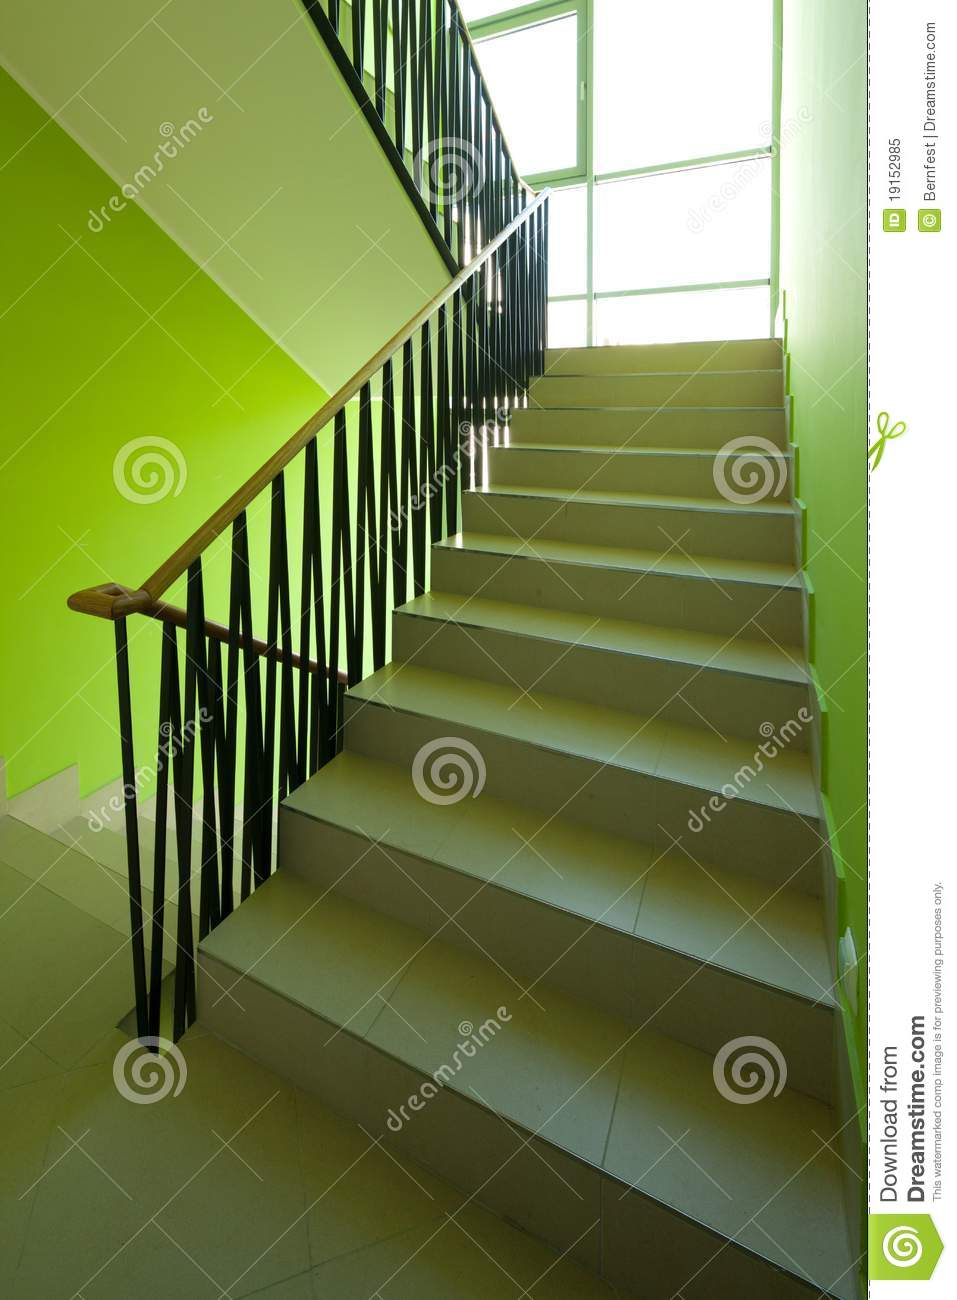 House Interior With Modern Stairs oyalty Free Stock Photo - Image ... - ^